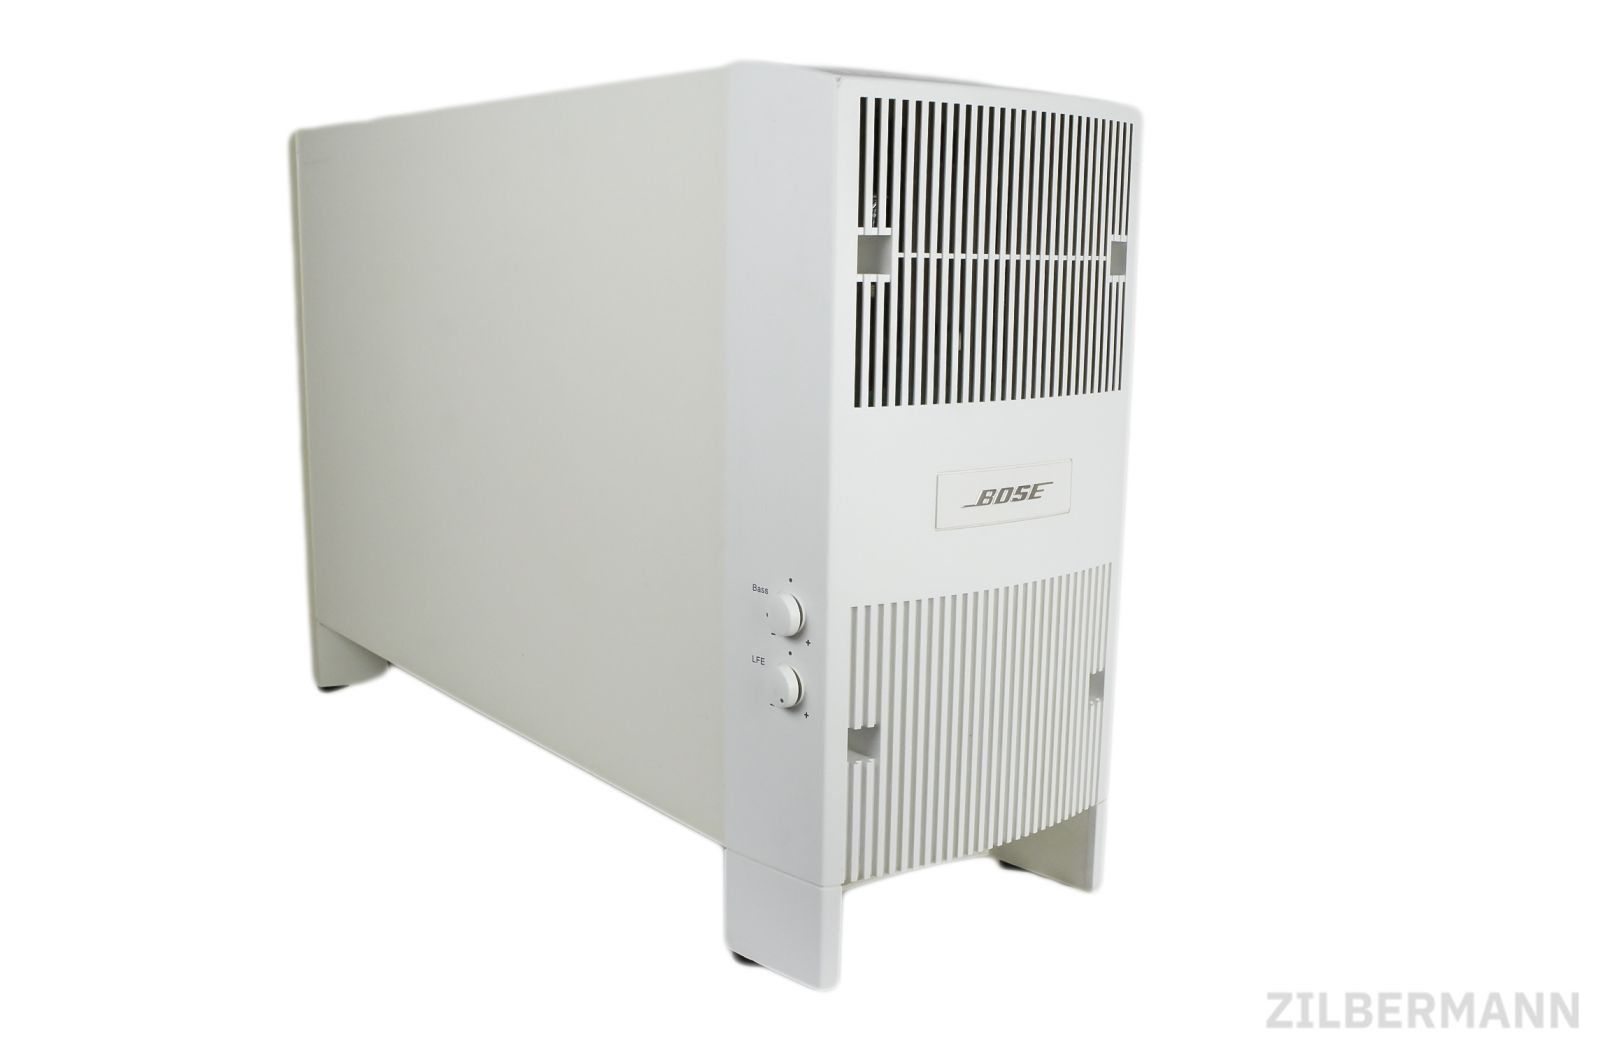 Bose_Acoustimass_10_Series_III_5.1_Powerte_Subwoofer_04